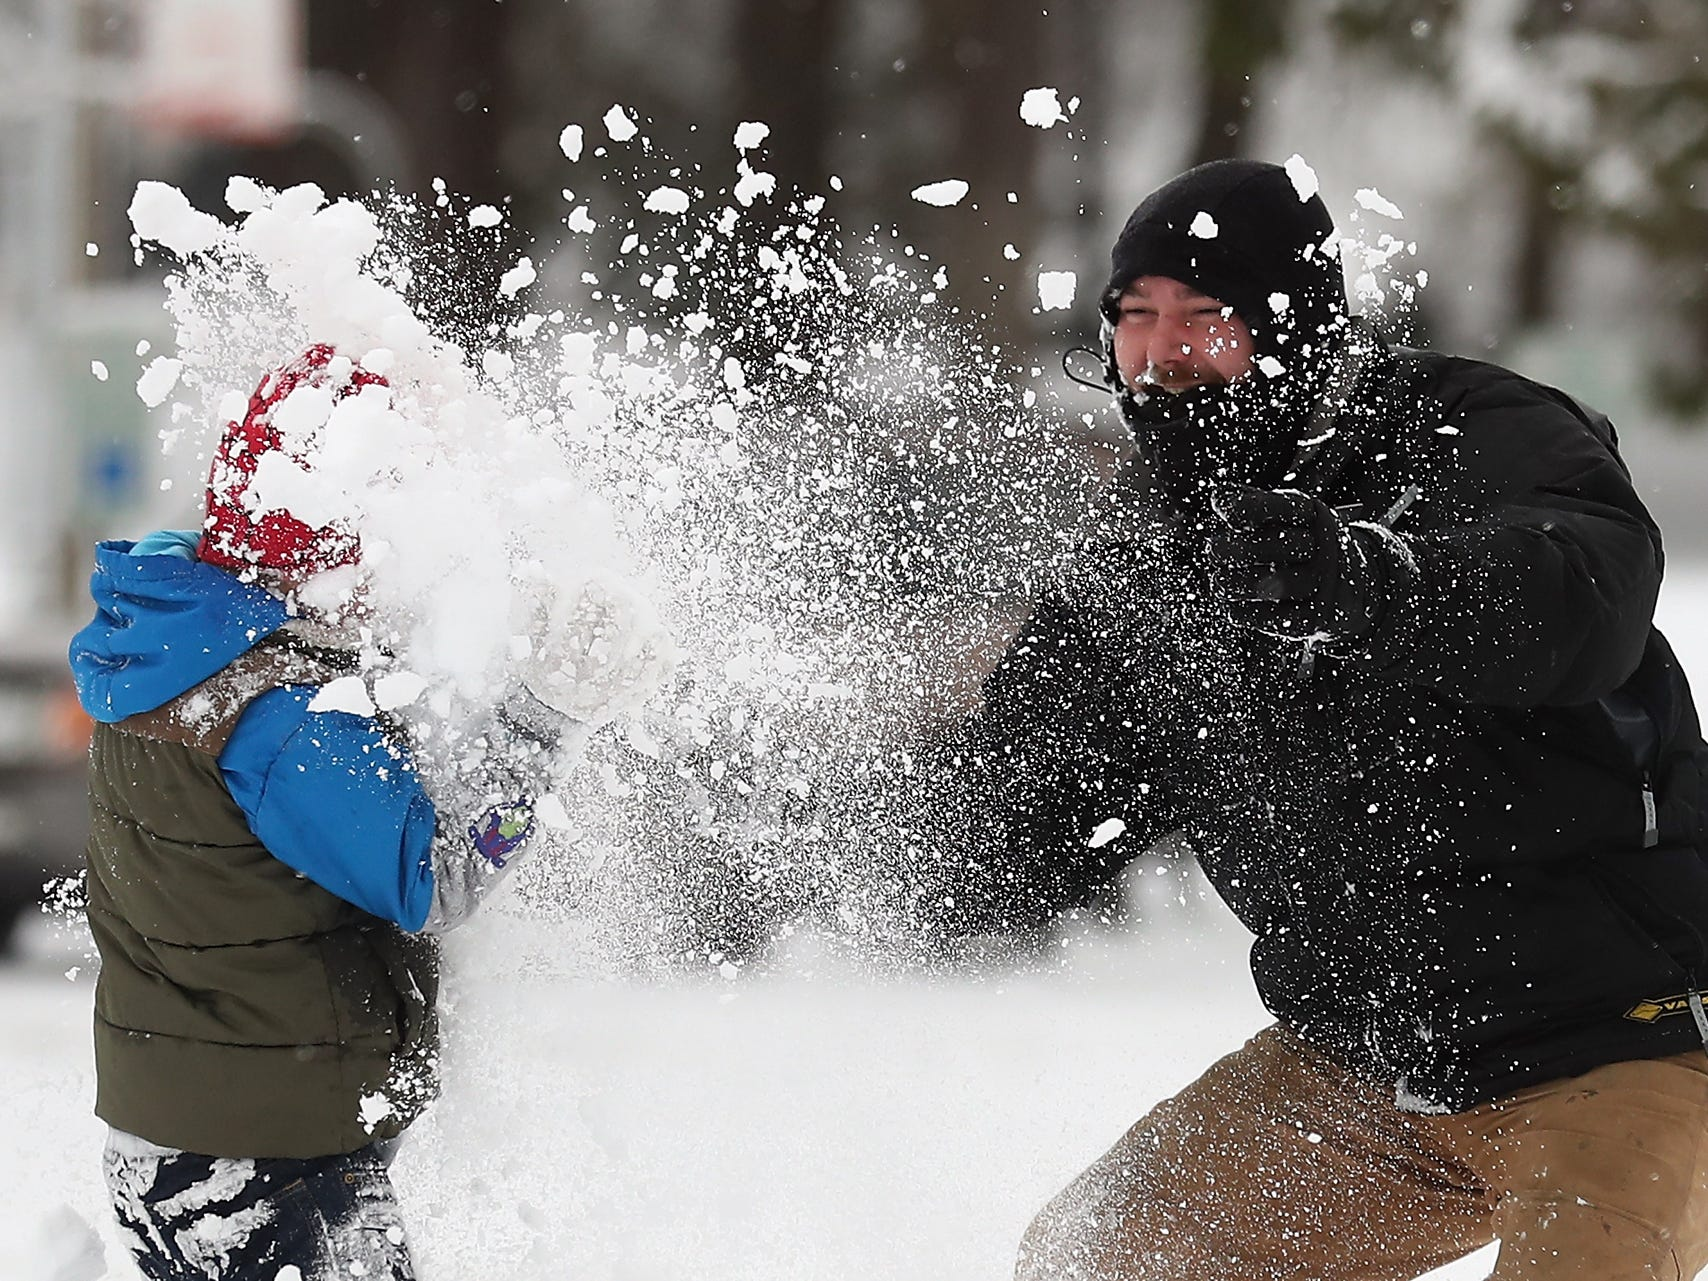 A snowball sneak attack by Sebastian Fletcher, 7, (left) goes horribly wrong when Brady Walster retaliates with a handful of loose snow at Evergreen Rotary Park in Bremerton on Saturday, February 9, 2019.